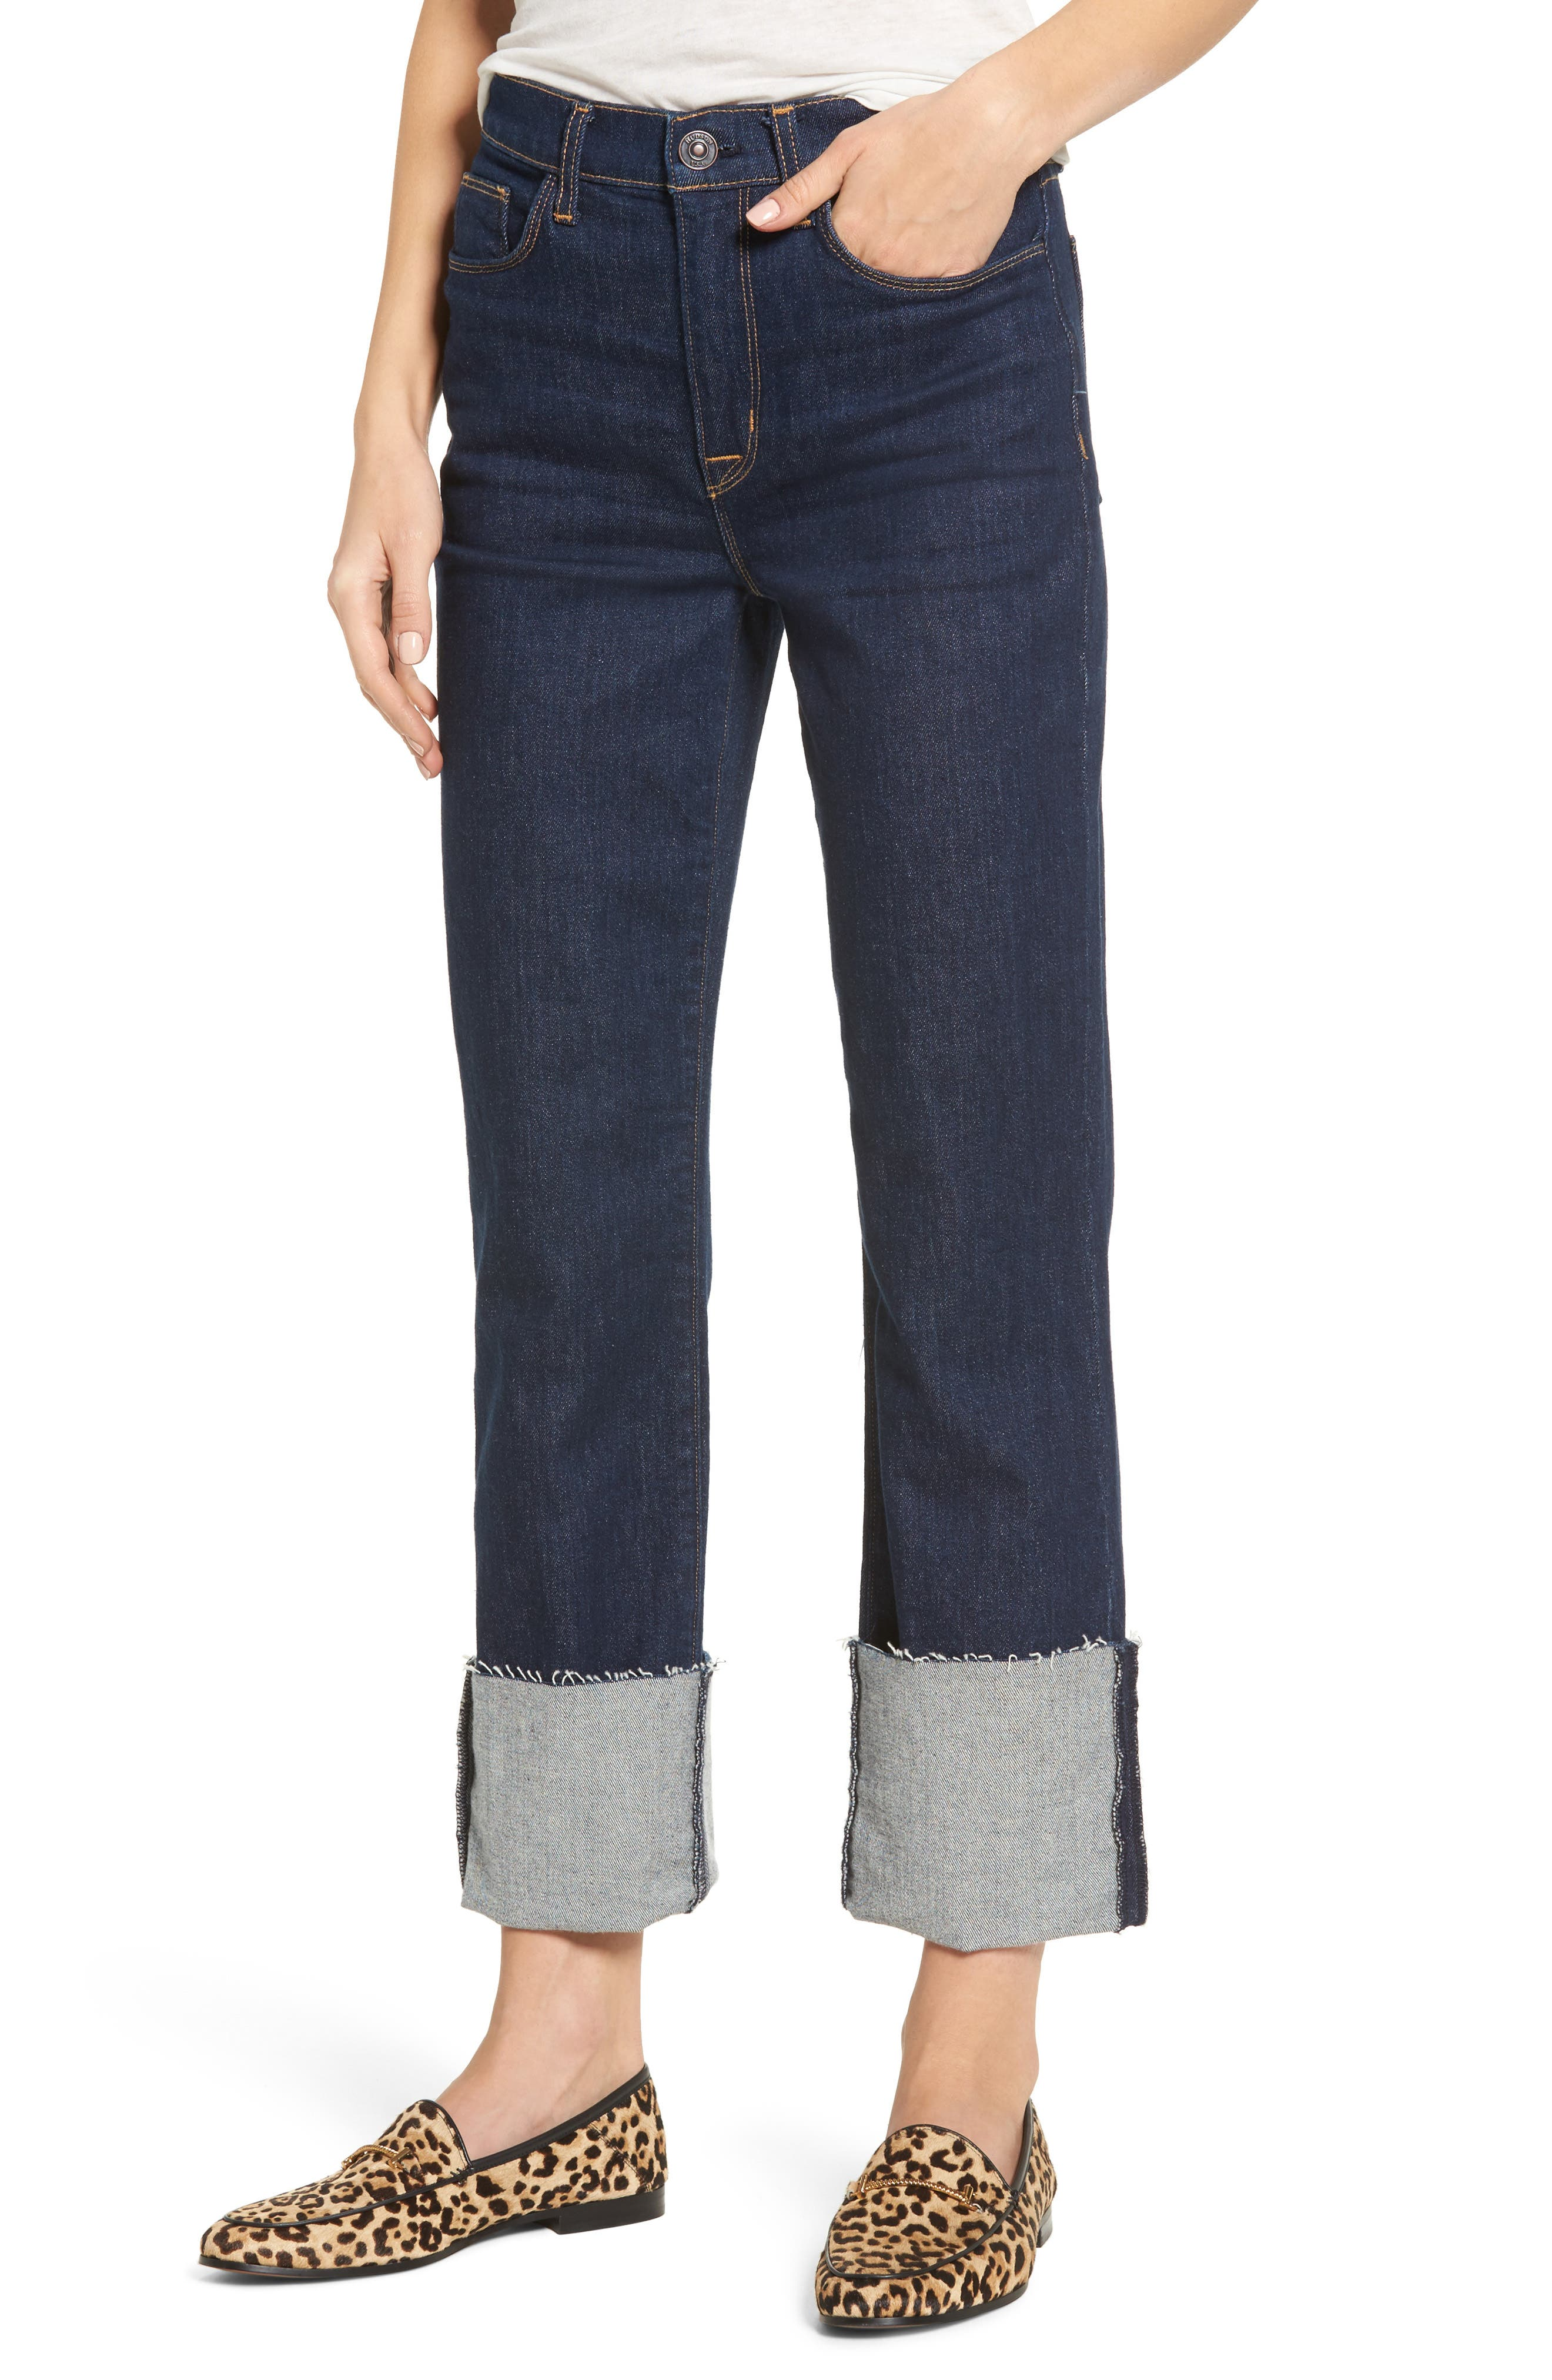 Zoeey High Waist Crop Straight Leg Jeans,                         Main,                         color, Revive